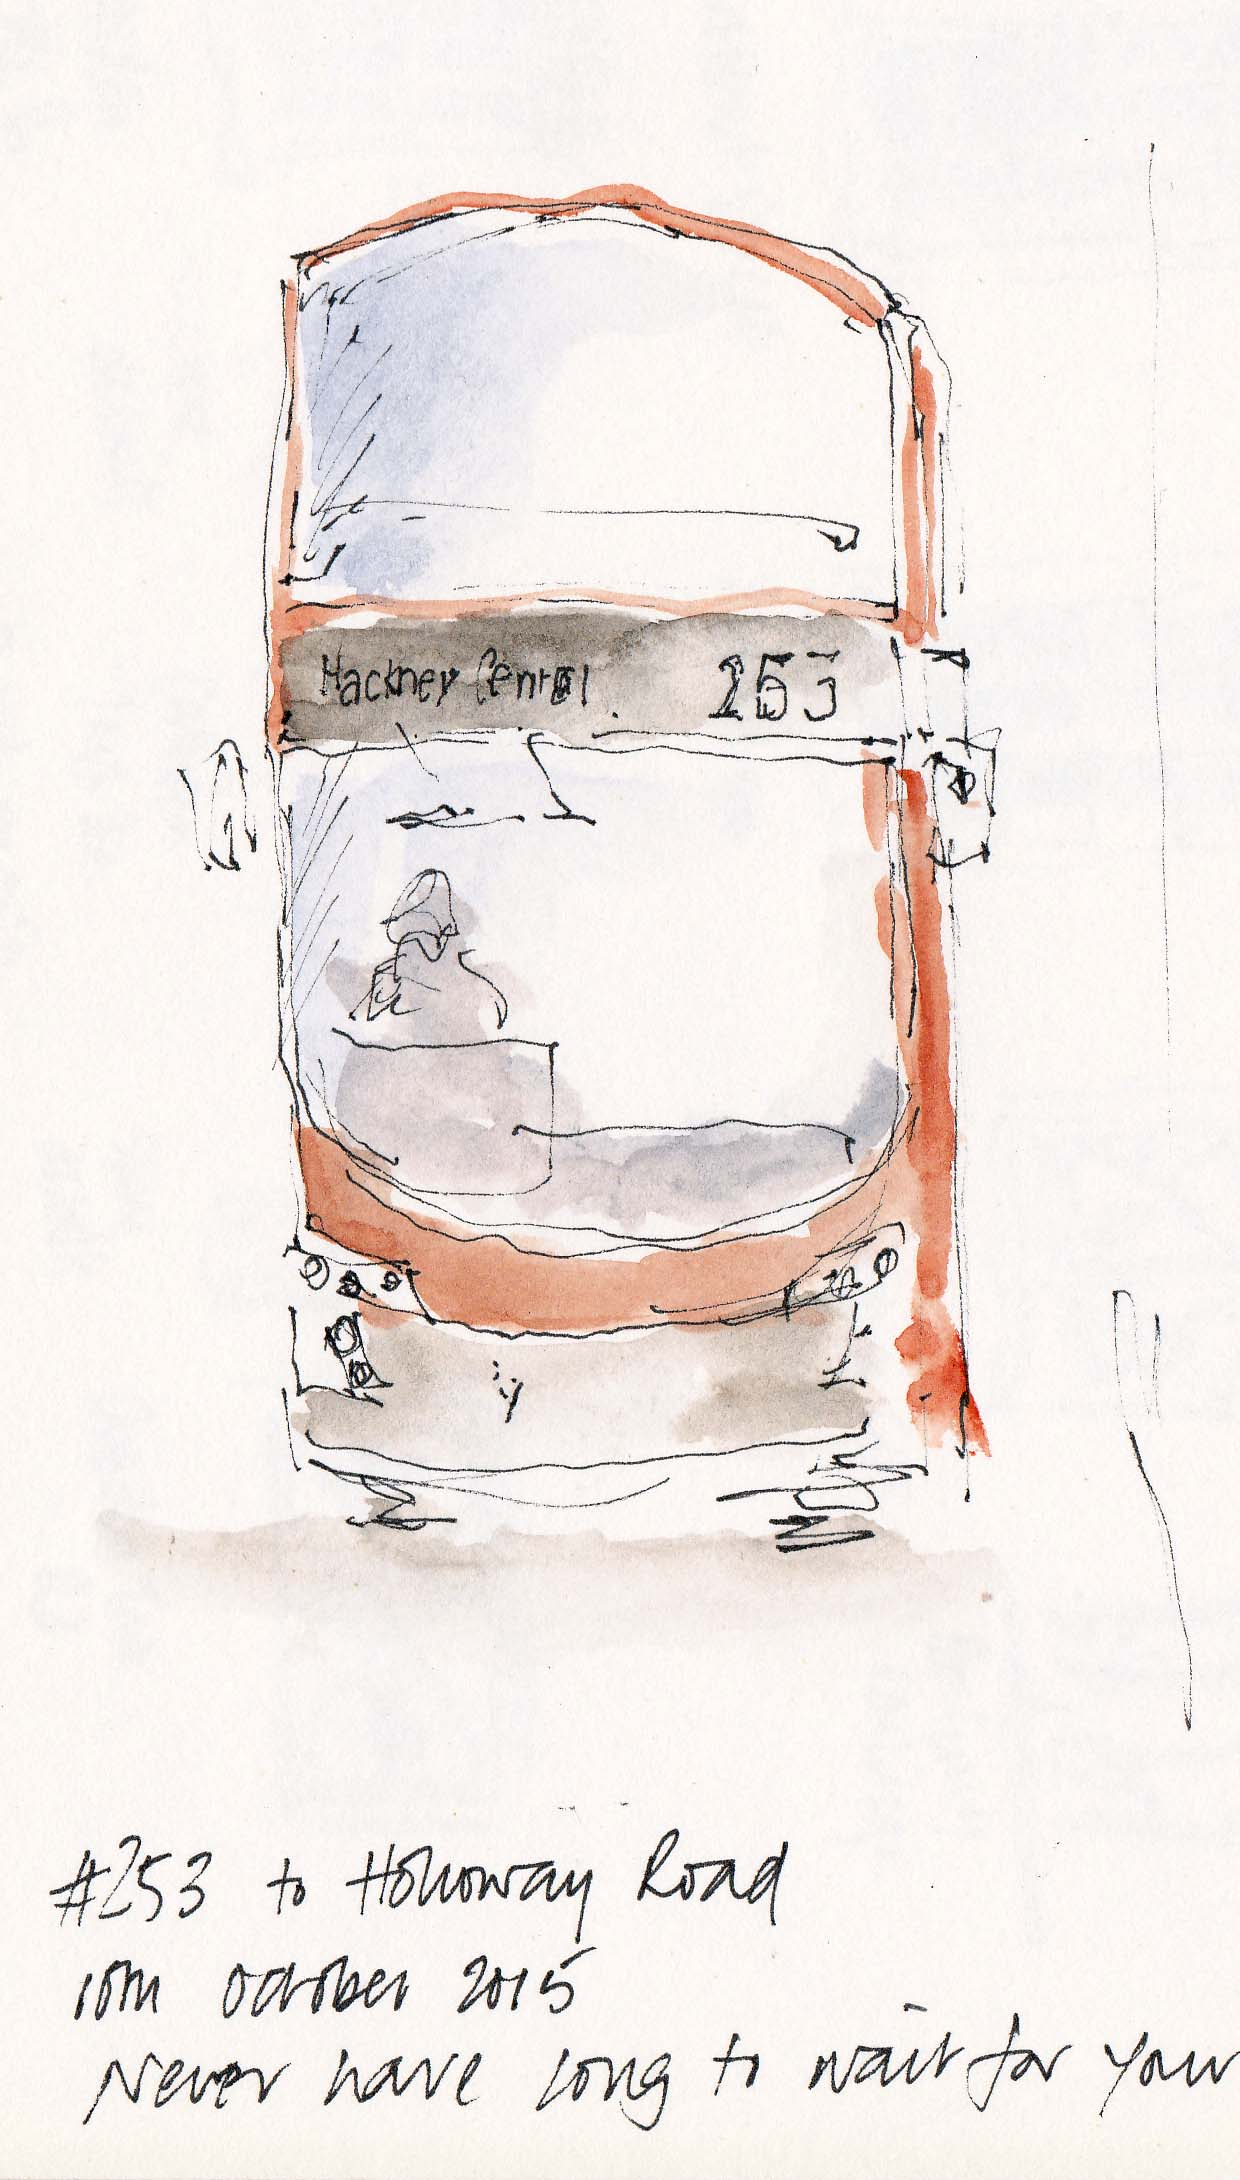 pen and ink drawing of 253 bus